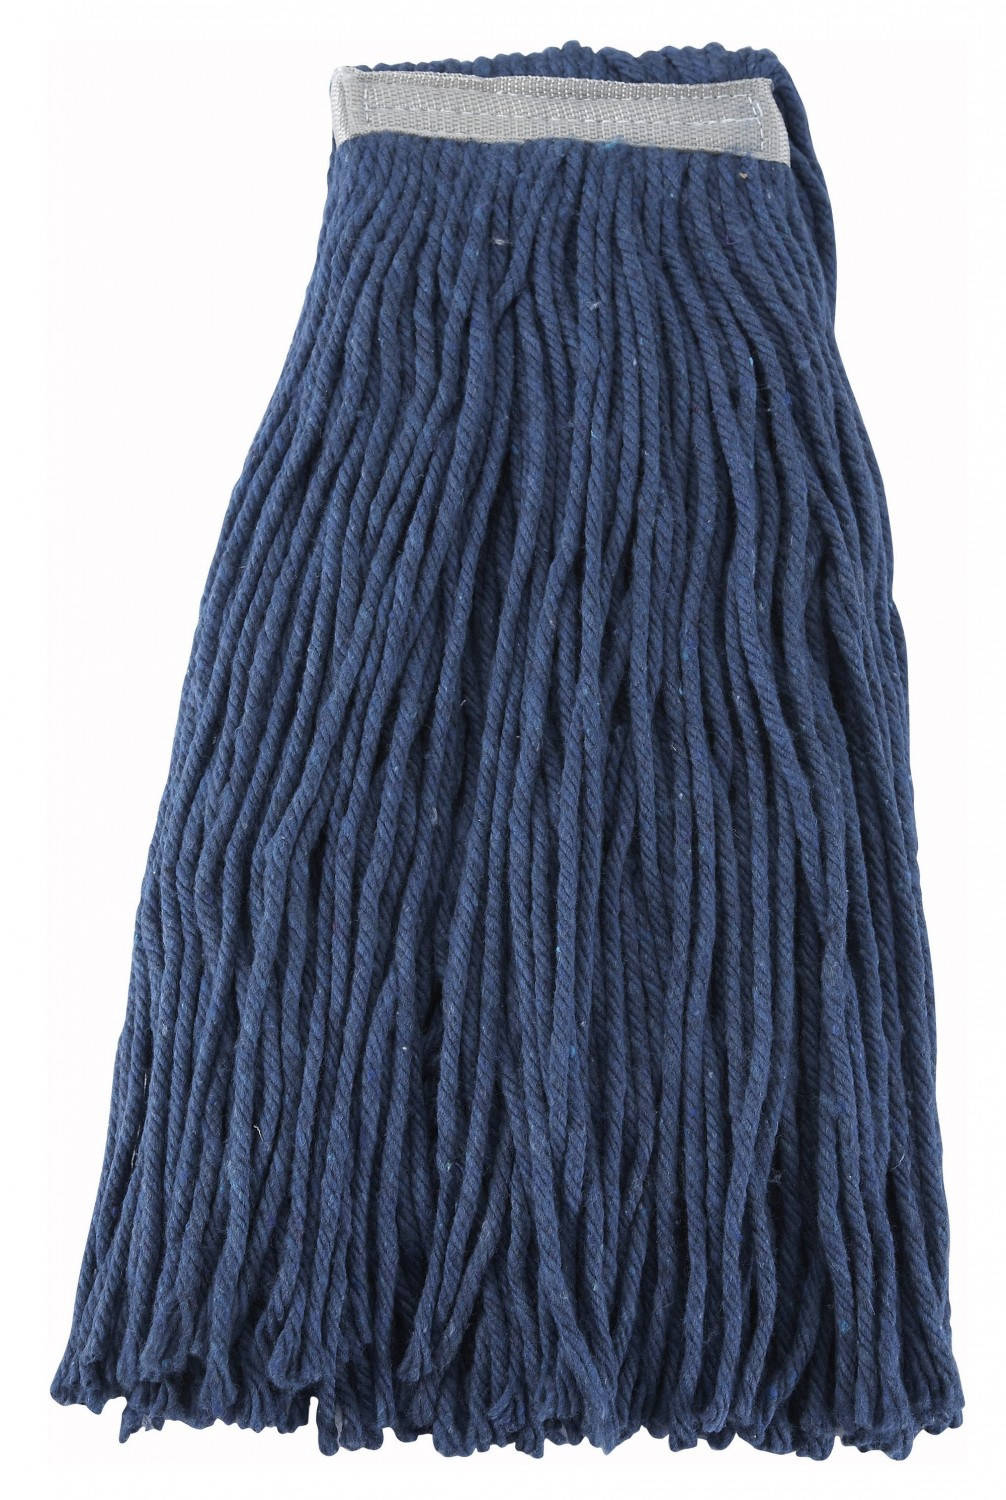 Winco MOP-24C Blue Yarn Mop Head with Cut Ends